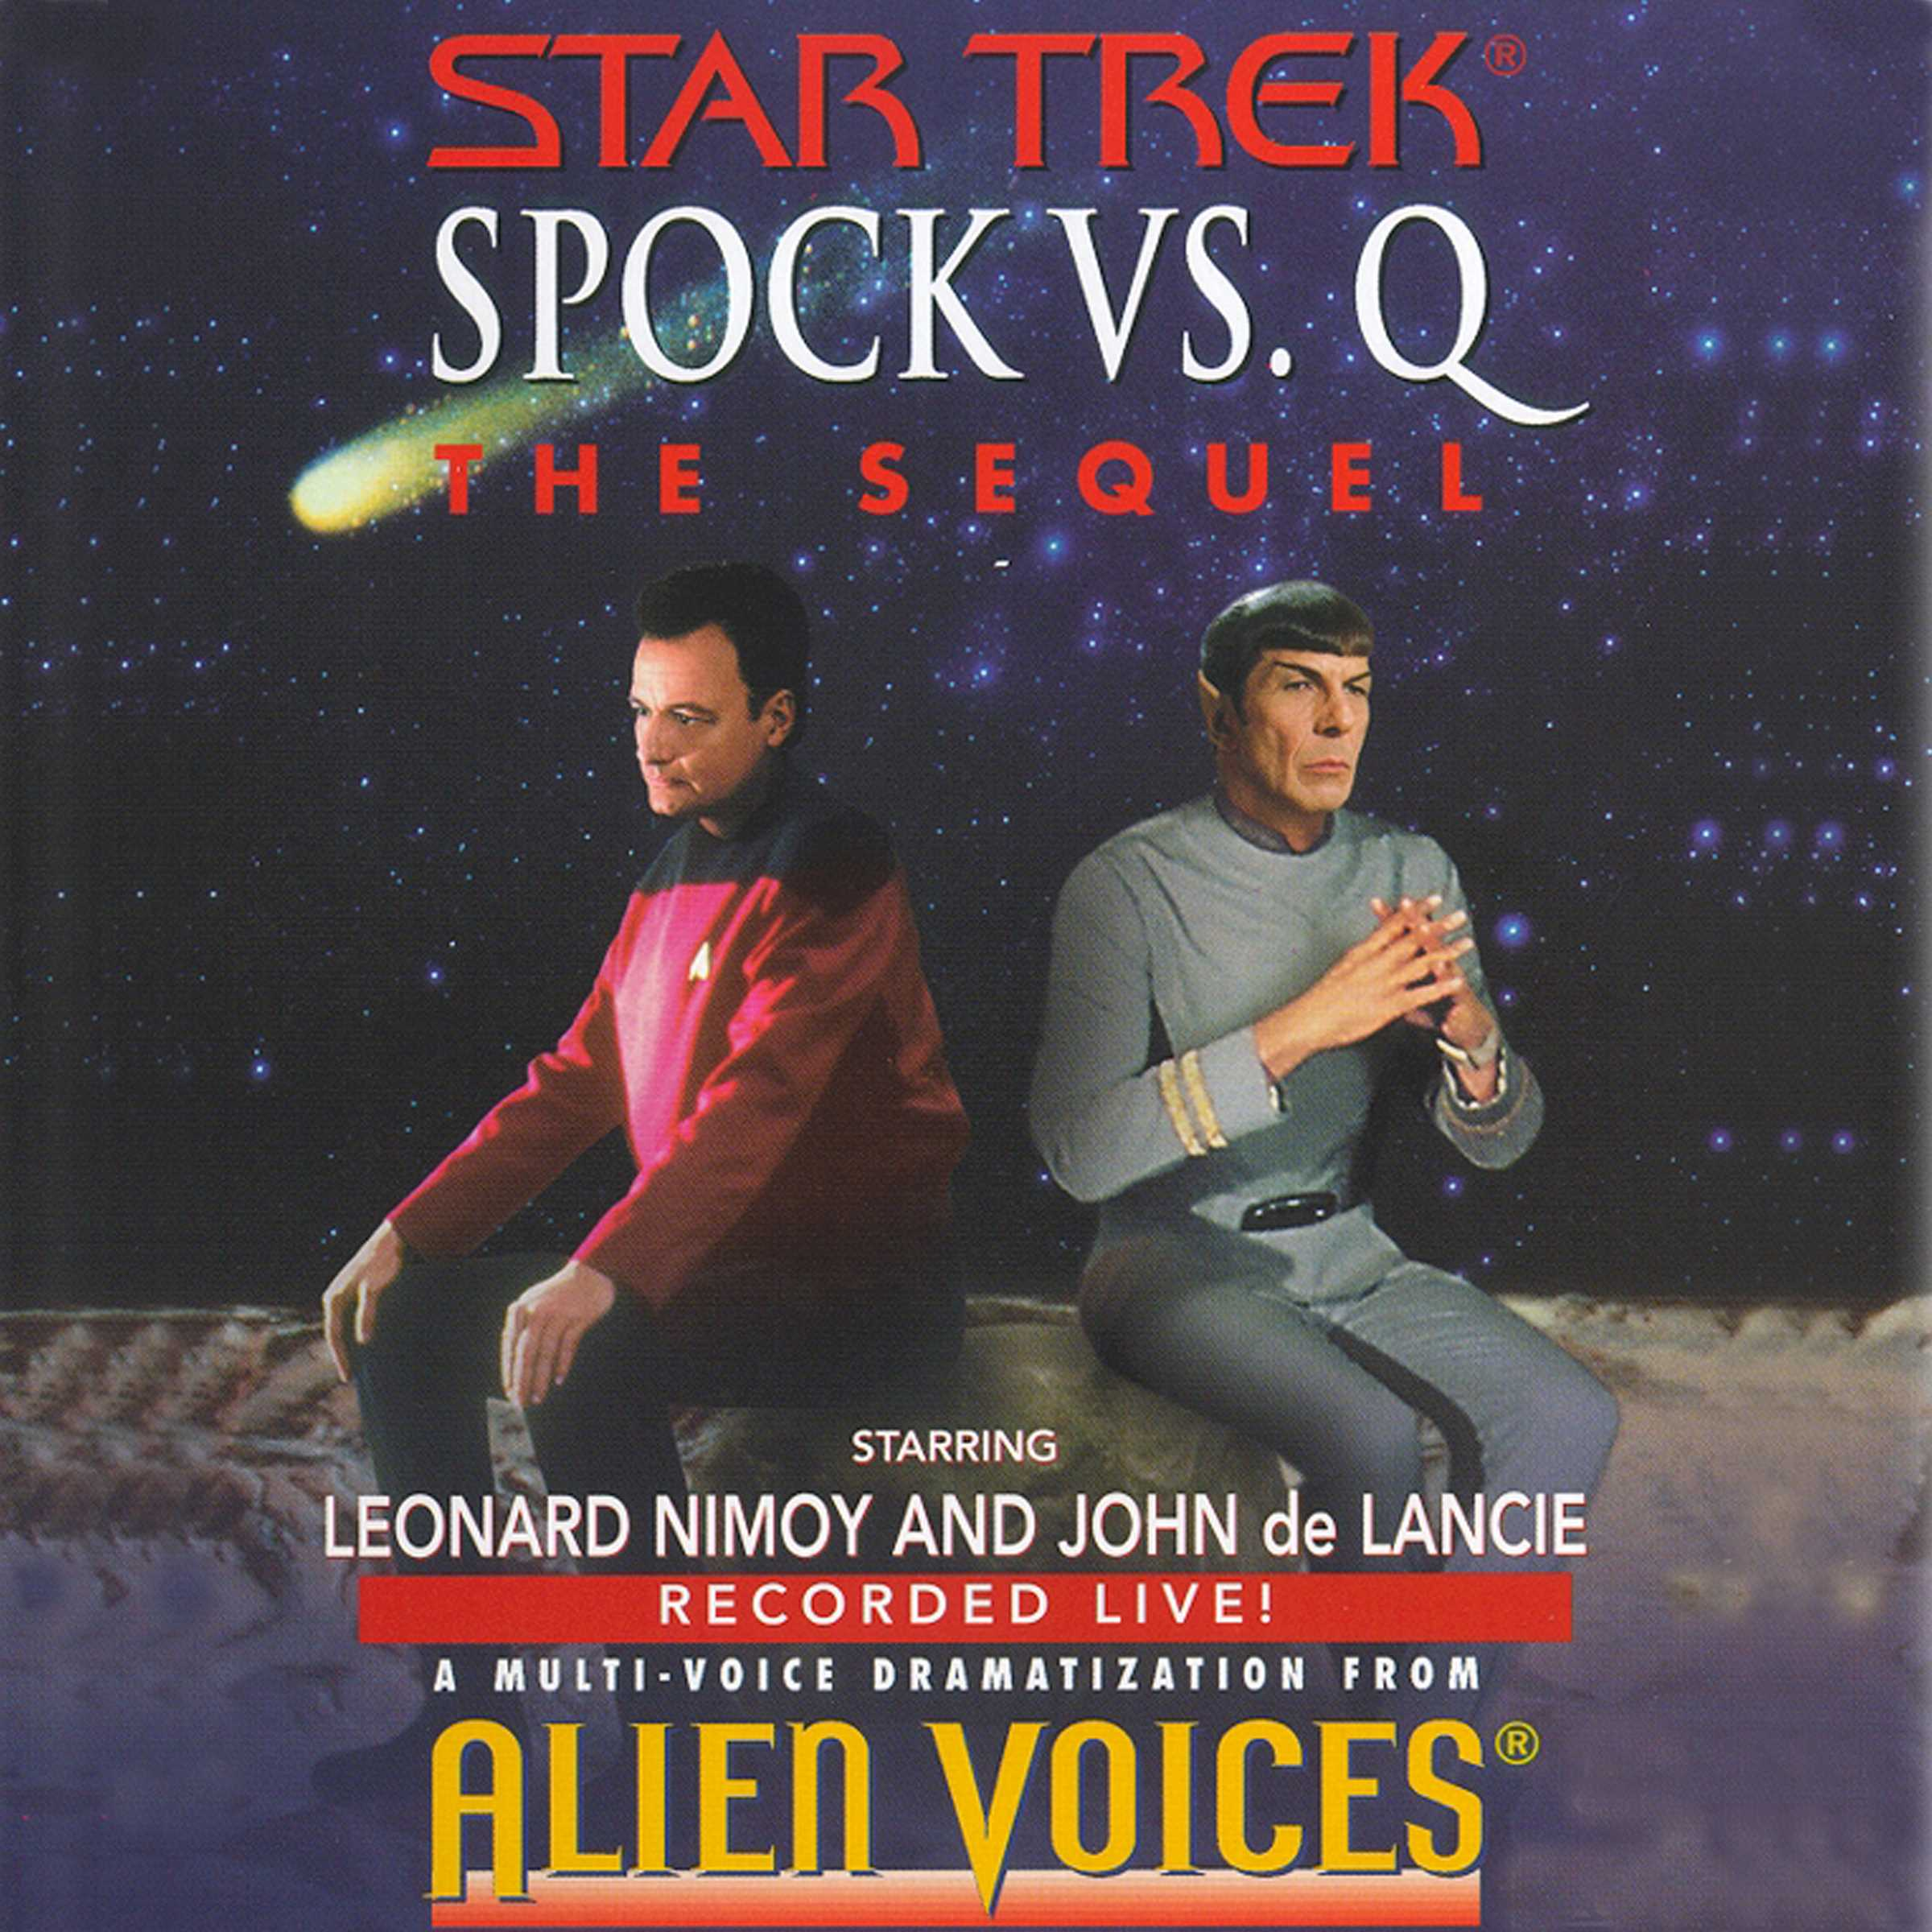 Star trek spock vs q the sequel 9780743569828 hr